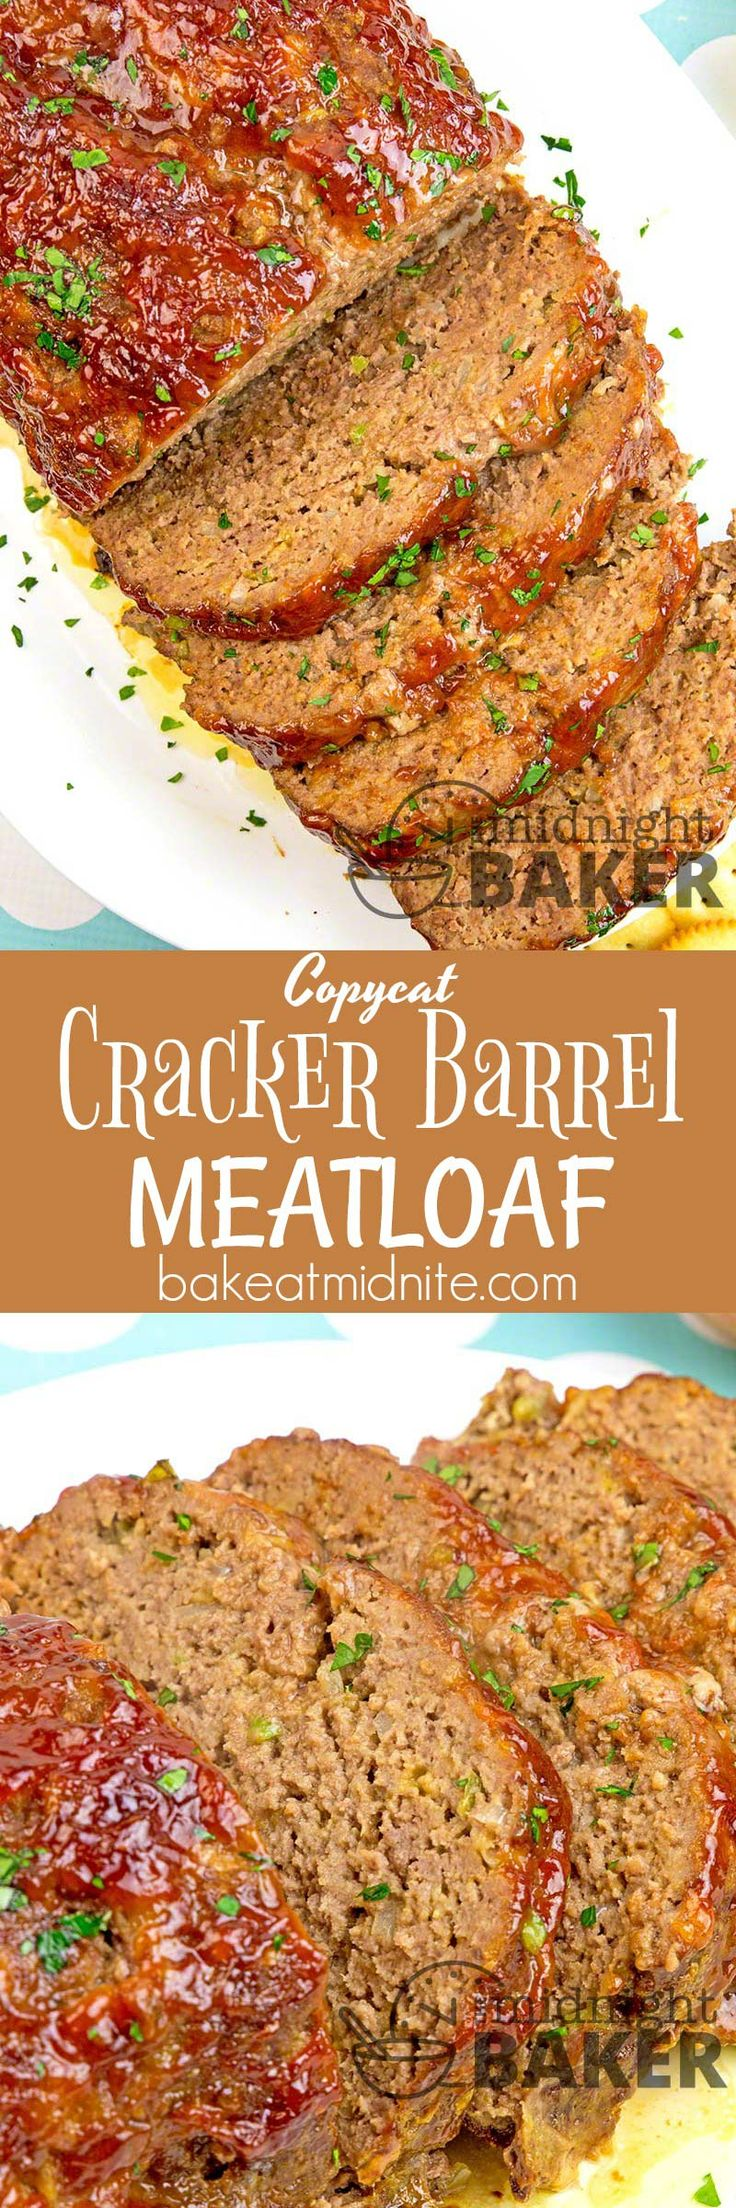 This meatloaf is one of Cracker Barrel's most beloved recipes.